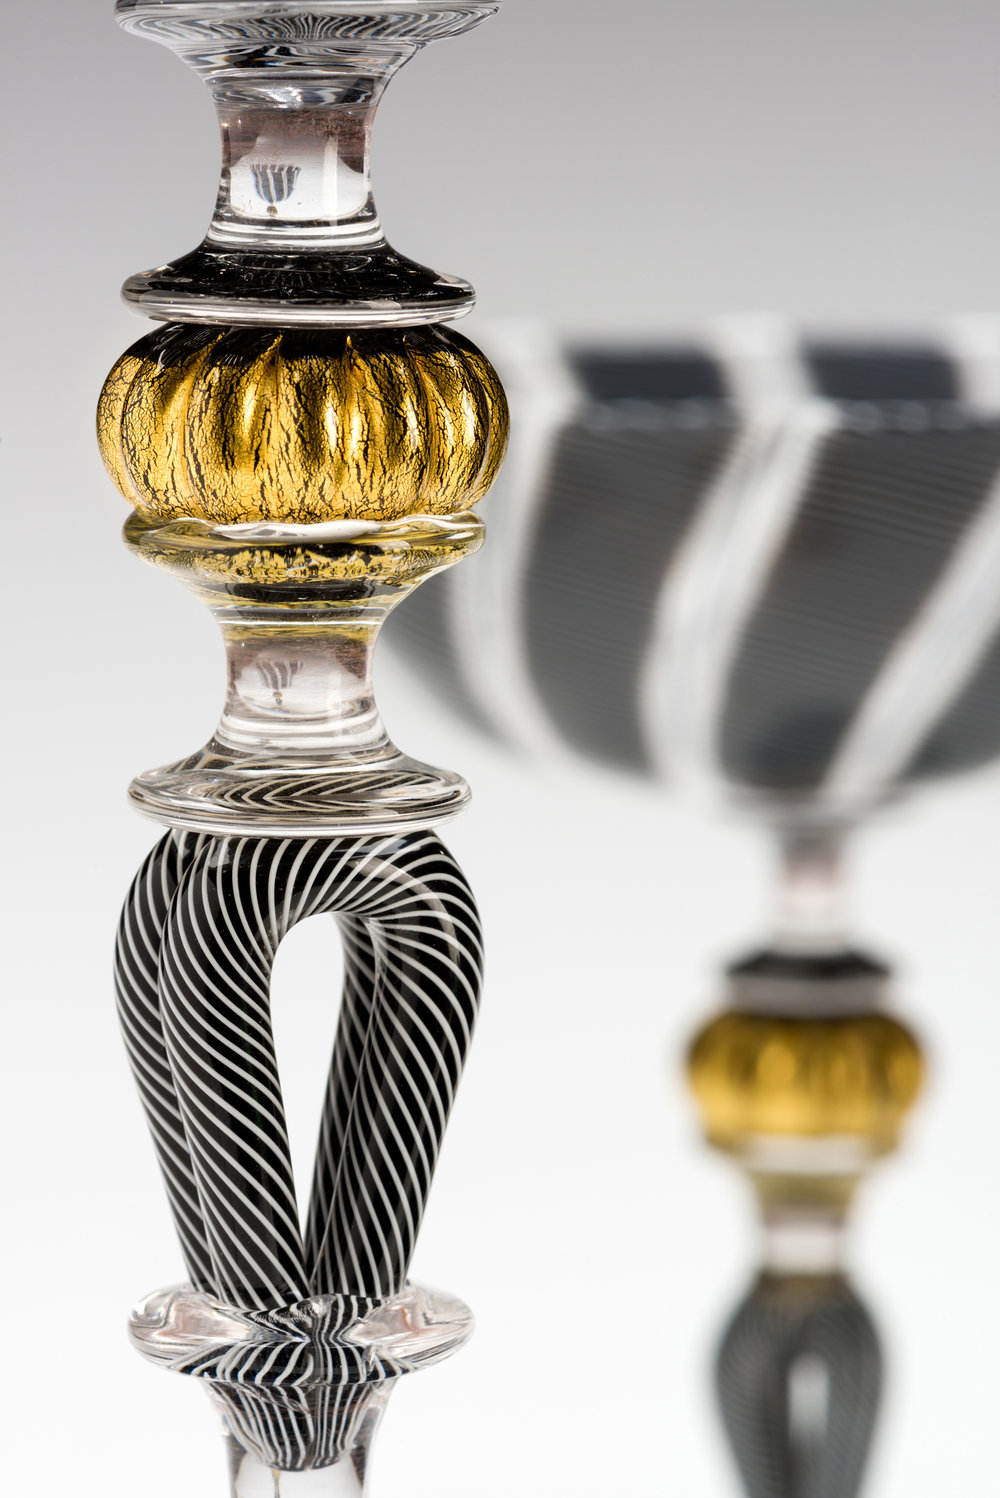 black and white cane goblet detail #1 copy.jpg